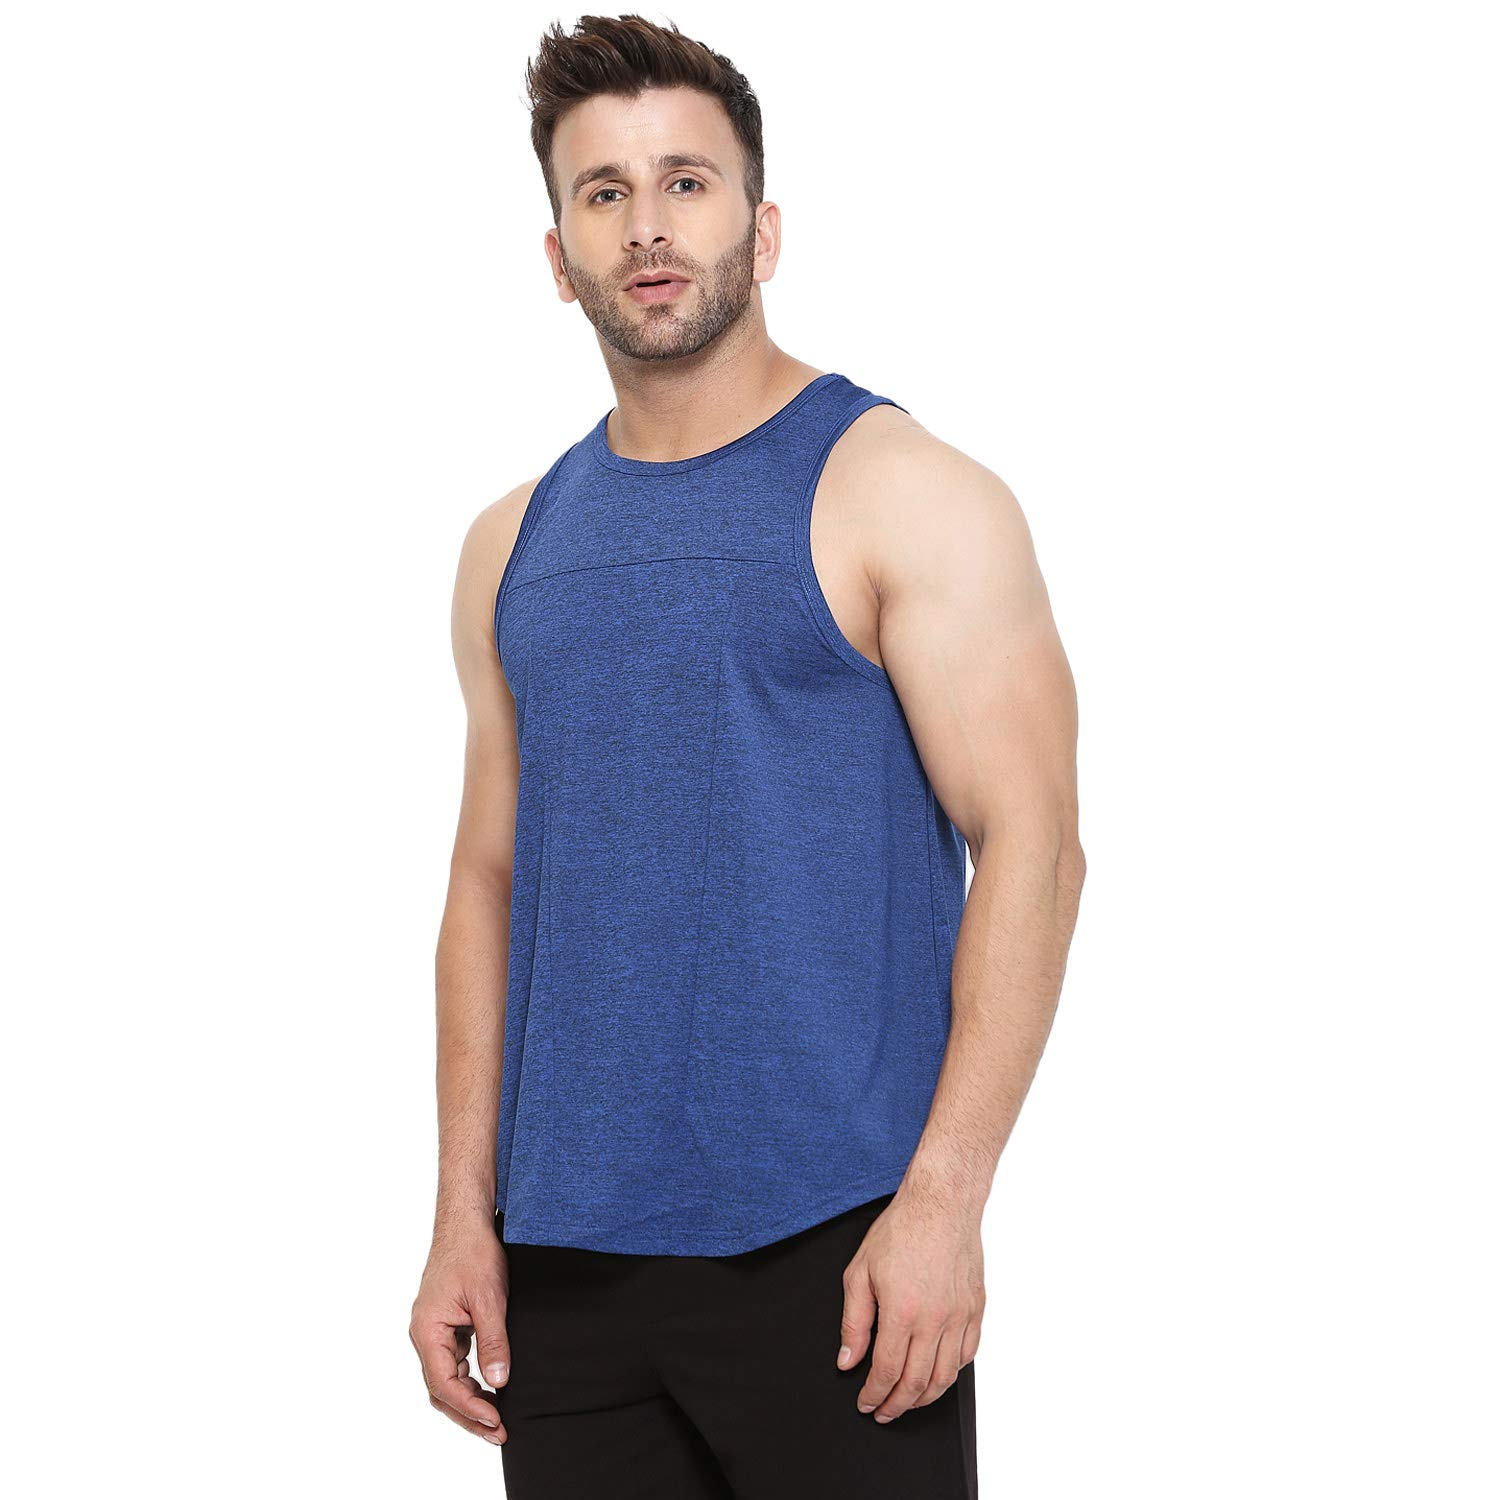 5dc821952e17a CHKOKKO Sleeveless Gym and Sportswear Tank Tops Sports Tshirt or Vests for  Men  Amazon.in  Clothing   Accessories